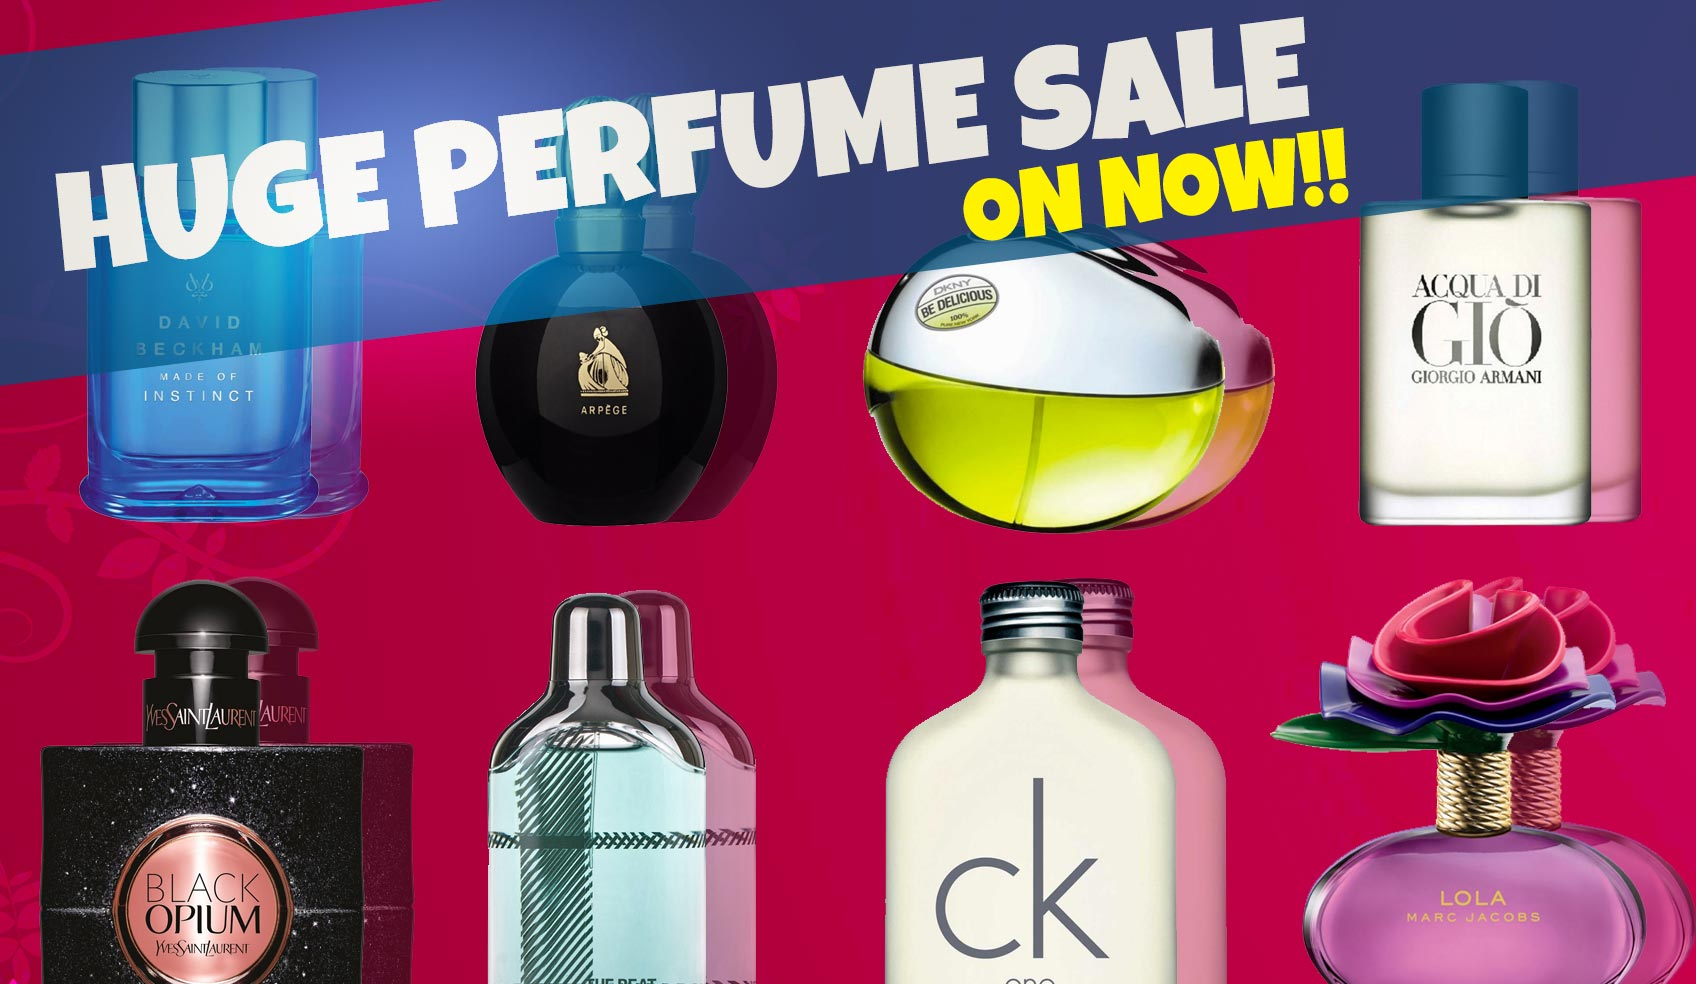 Perfume Sale On Now!